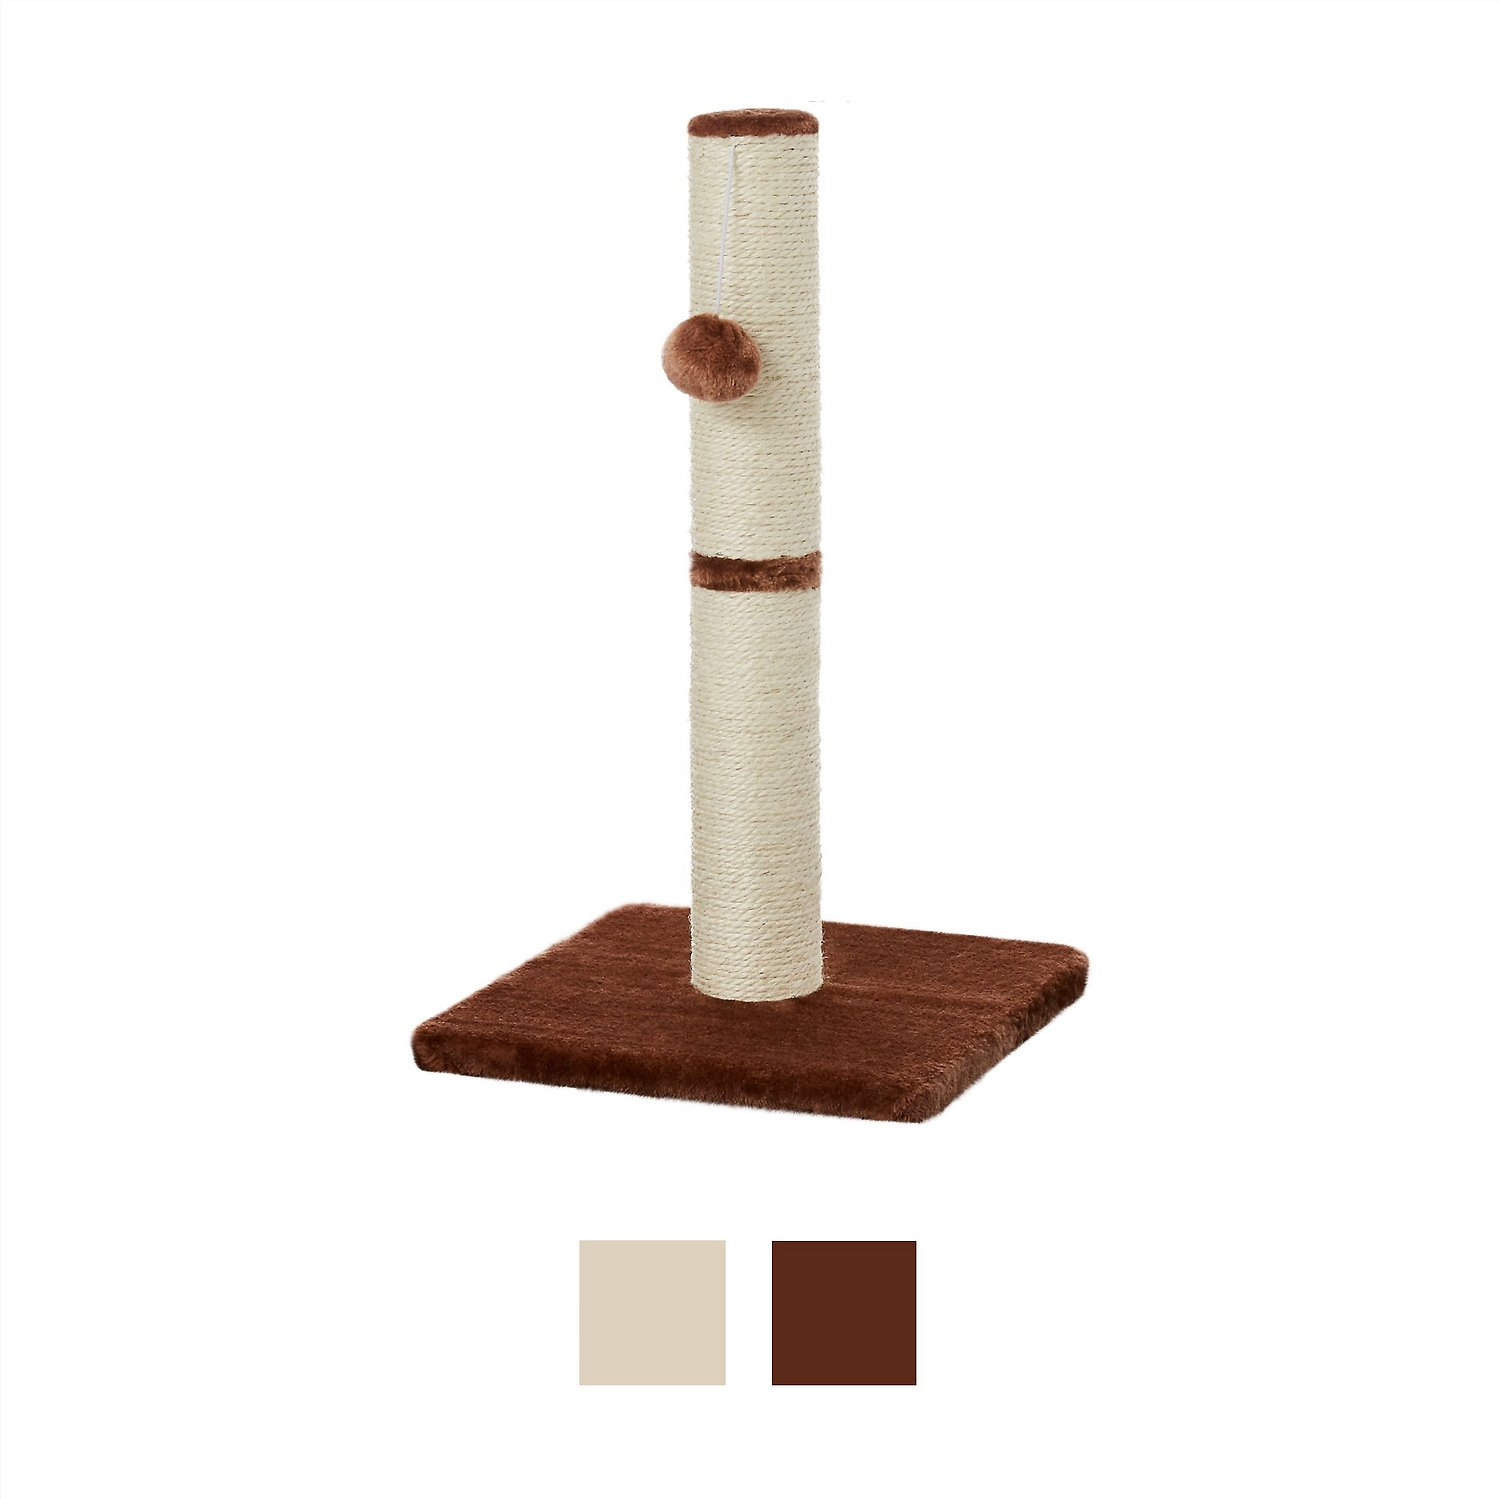 Frisco 21-in Cat Scratching Post with Toy, Cream Frisco 21-in Cat Scratching Post with Toy, Cream new photo